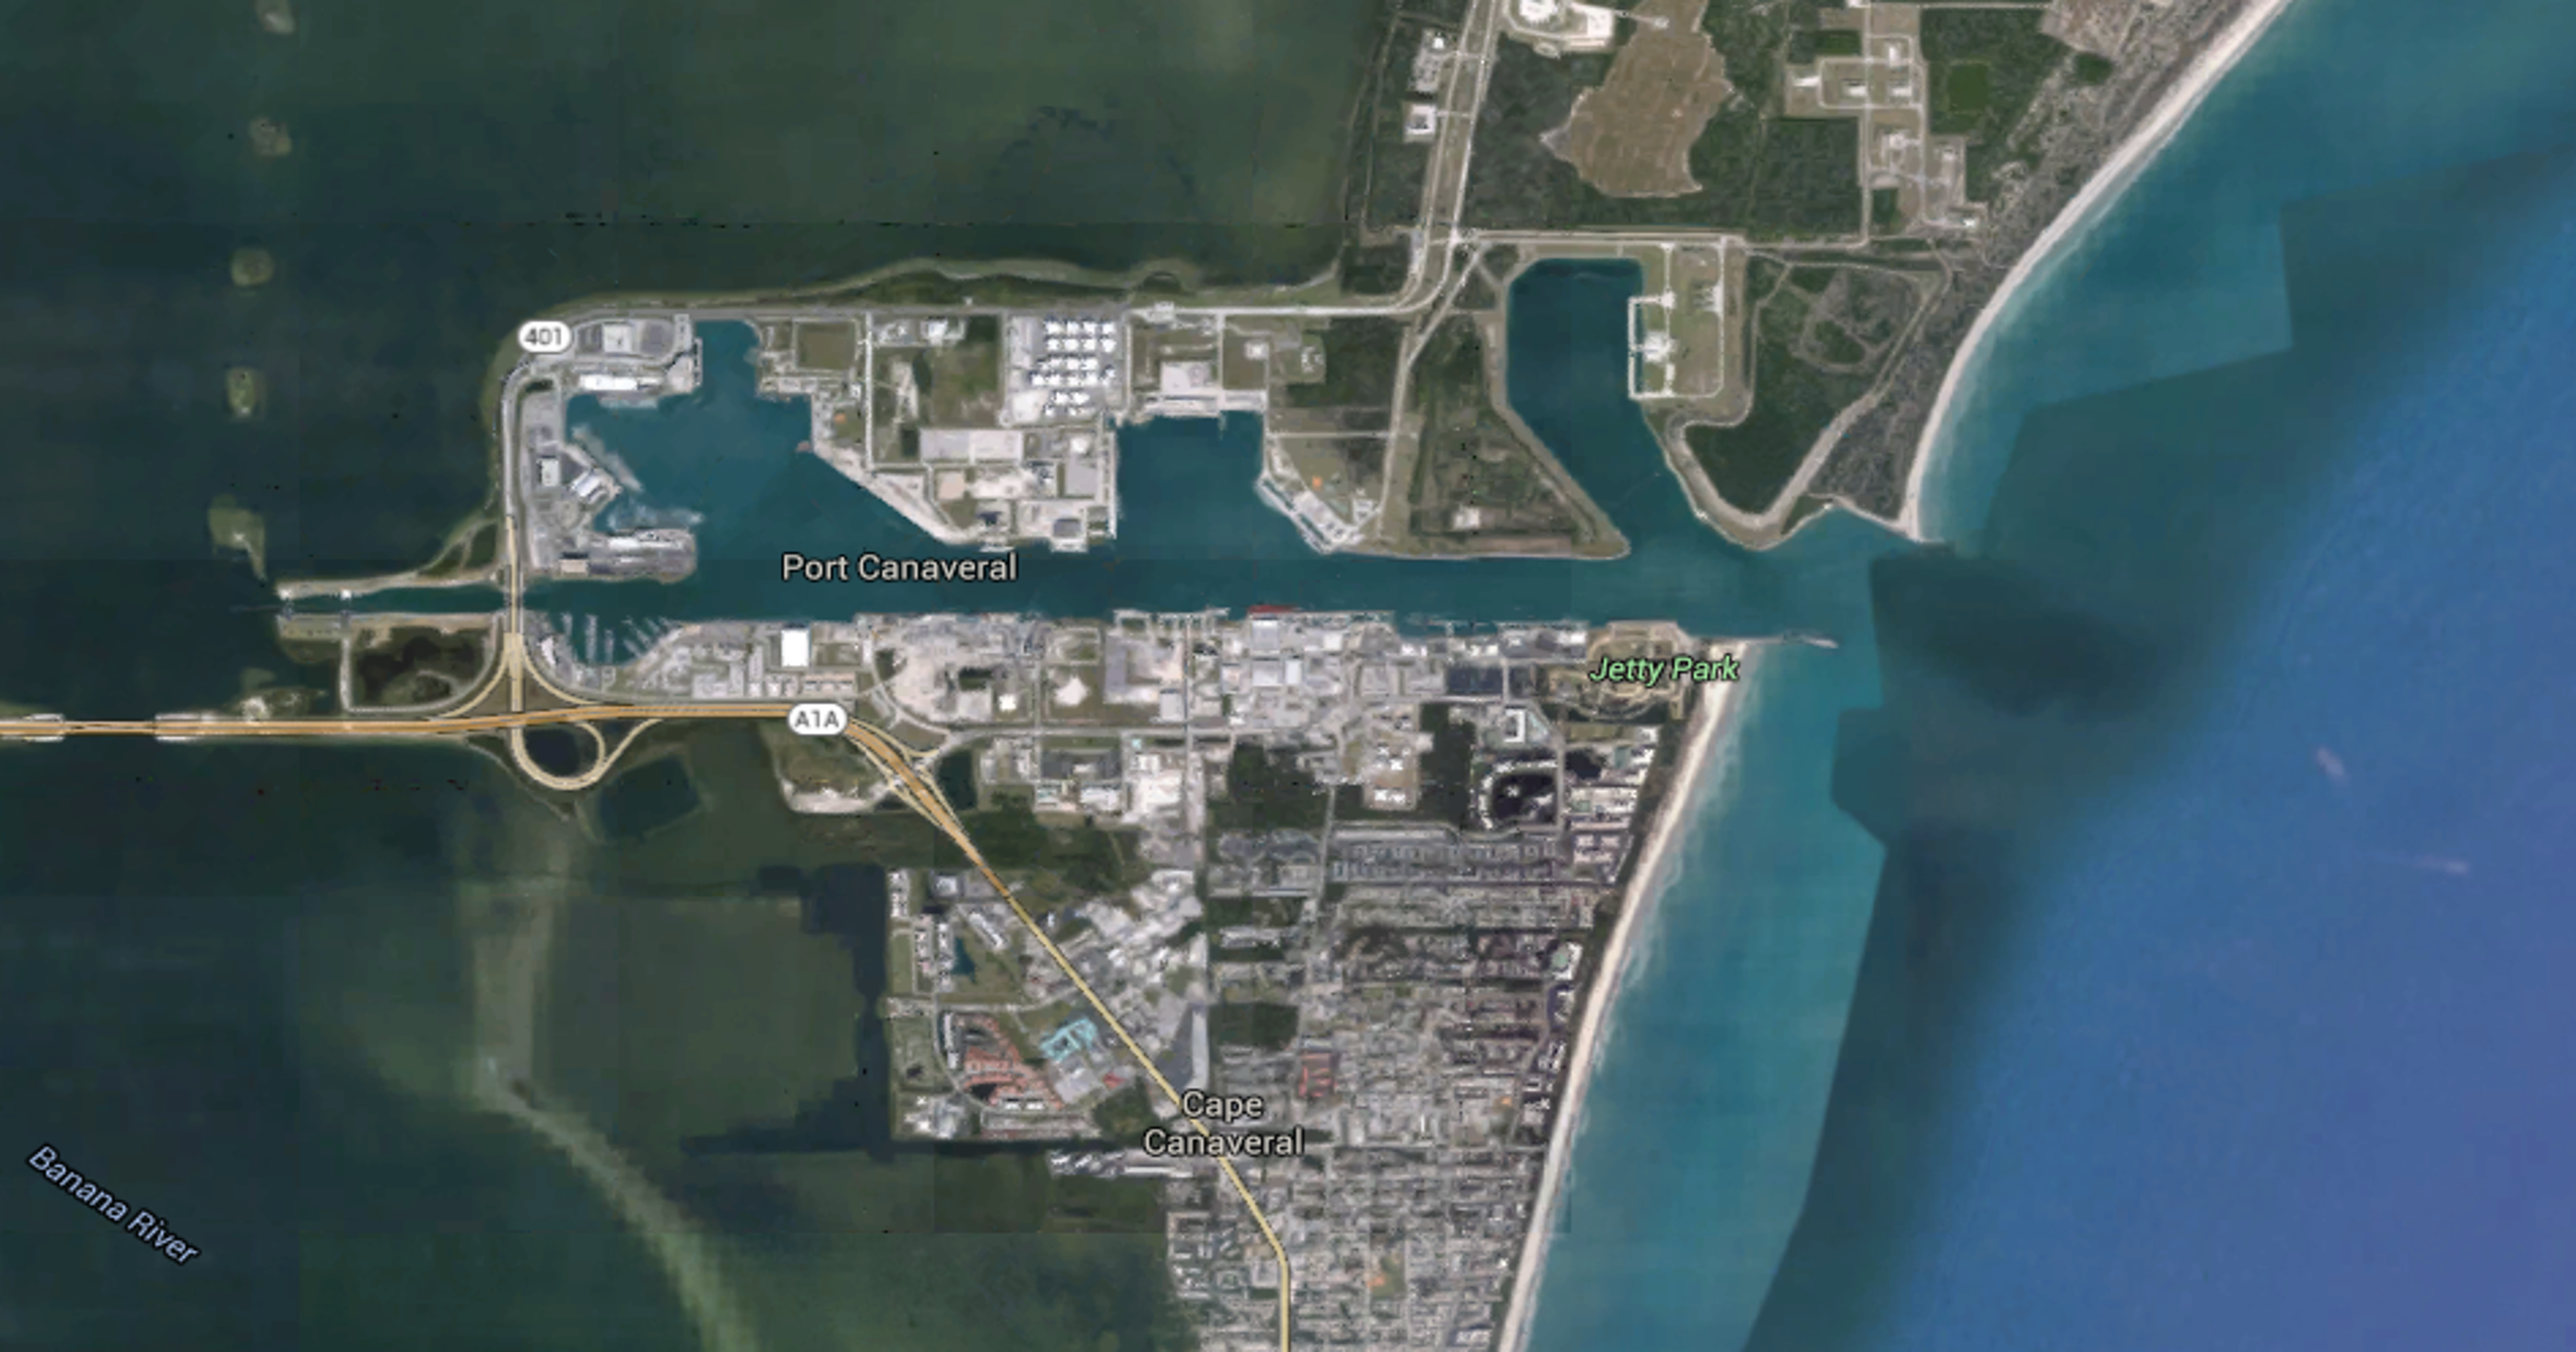 Boat capsizes off Port Canaveral, four rescued